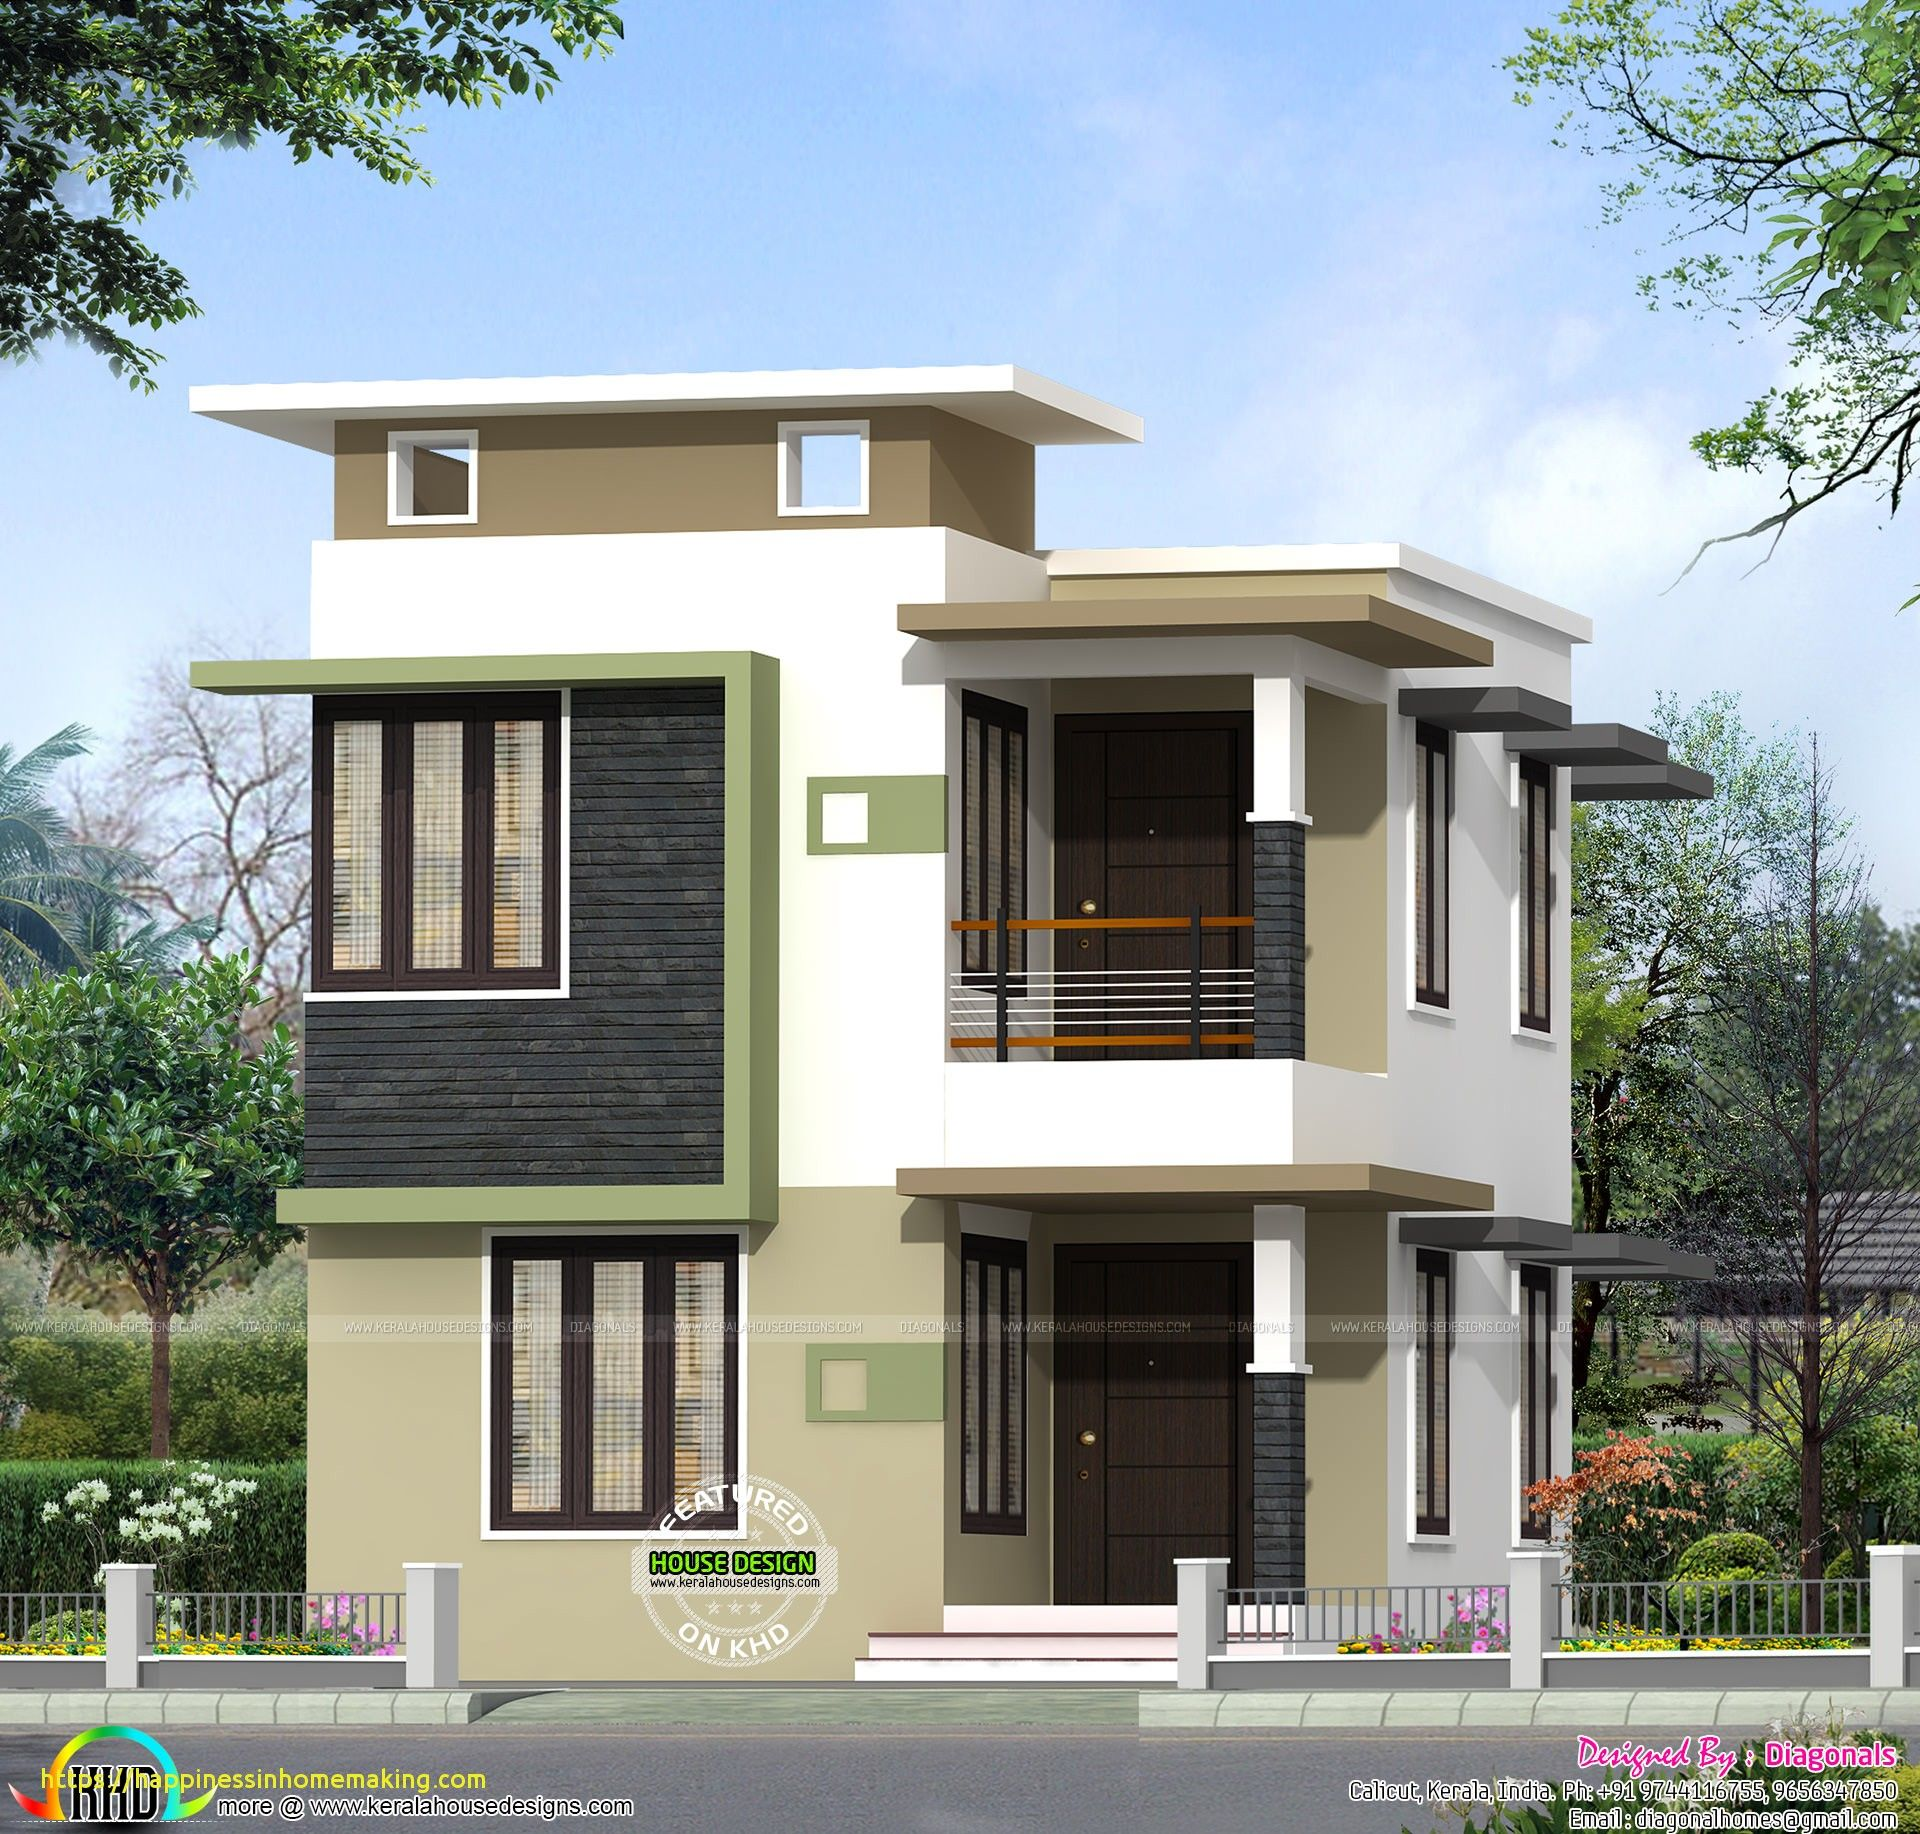 Simple indian house front elevation cheap houses for rent near me frontelevation housefrontelevation housefrontelevationdesigns also outstanding south duplex plans with free rh pinterest